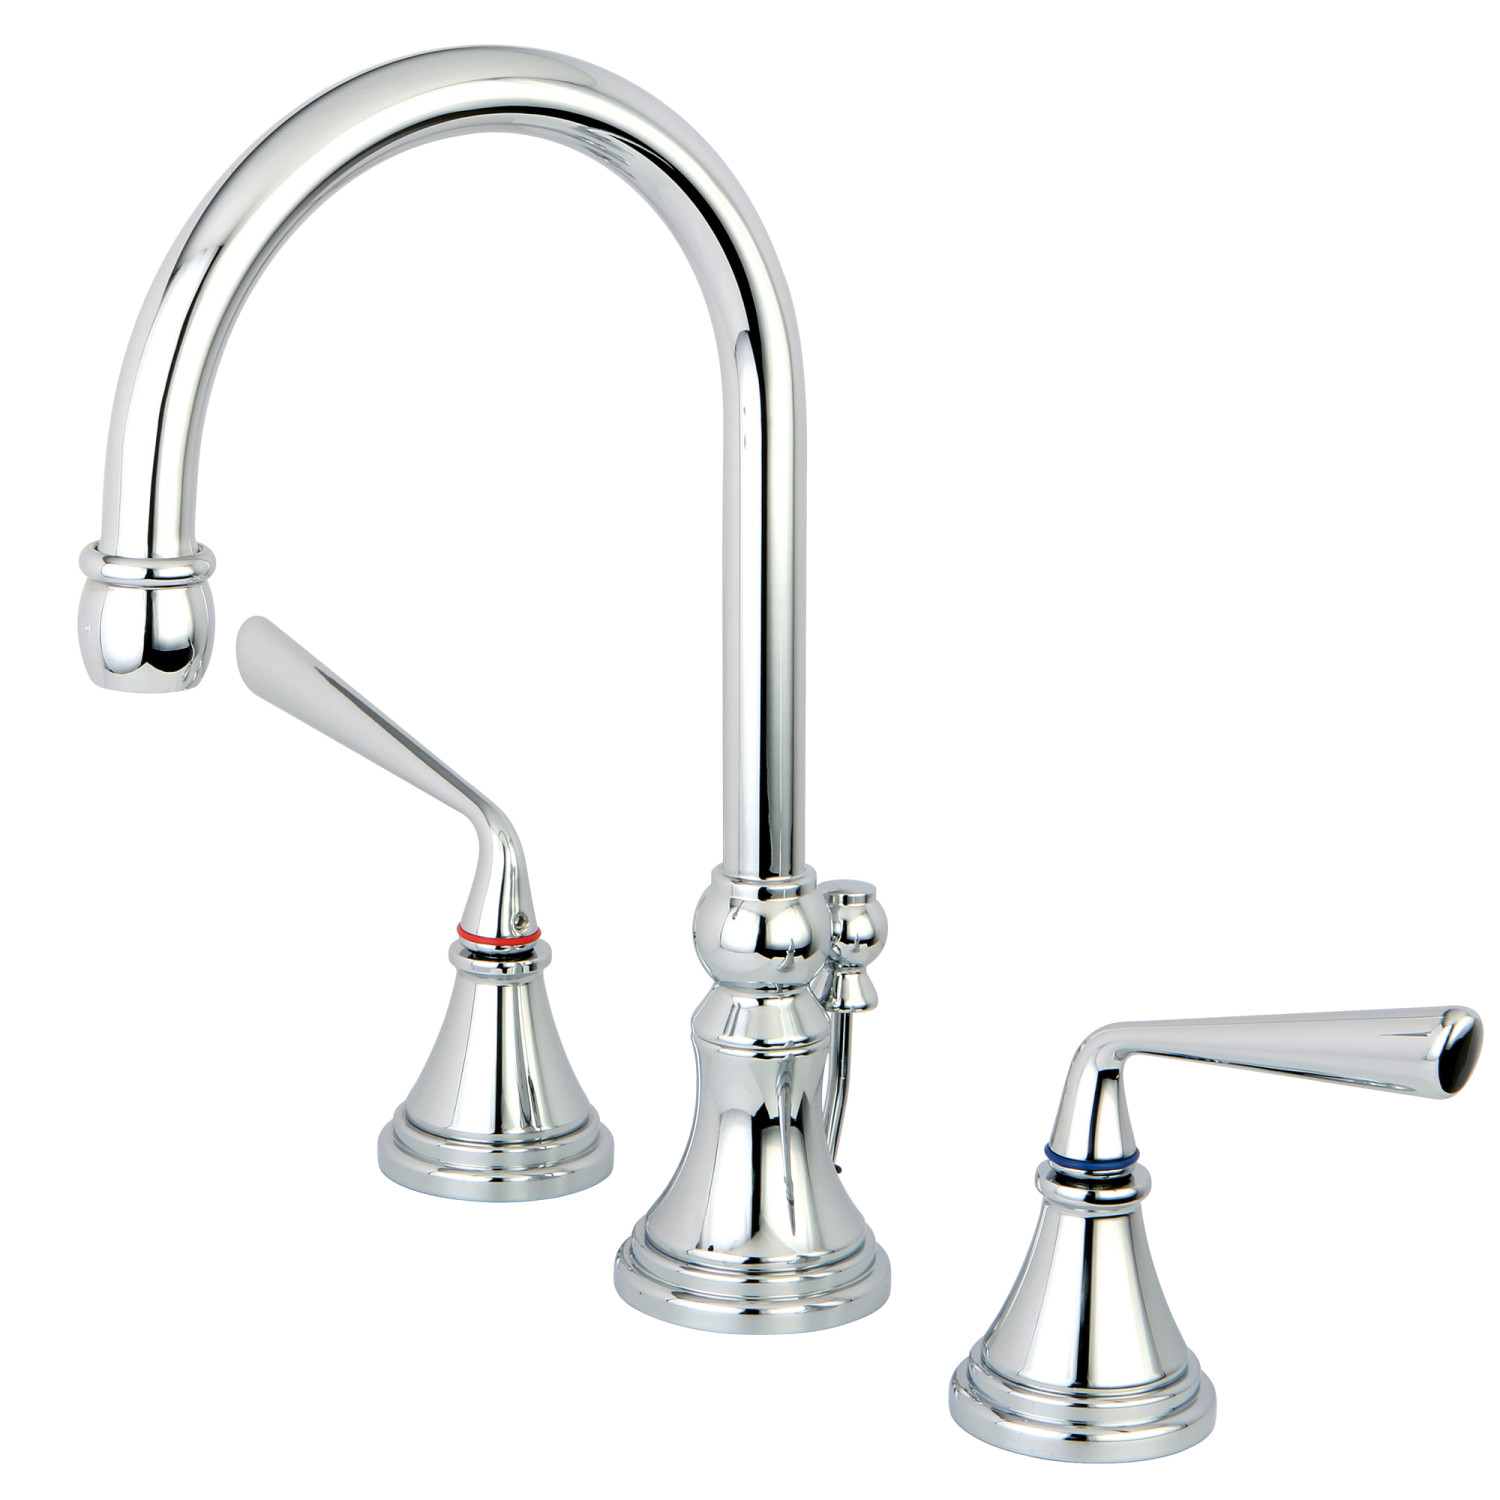 Modern Two-Handle 3-Hole Deck Mounted Widespread Bathroom Faucet with Brass Pop-Up Polished Chrome Finish